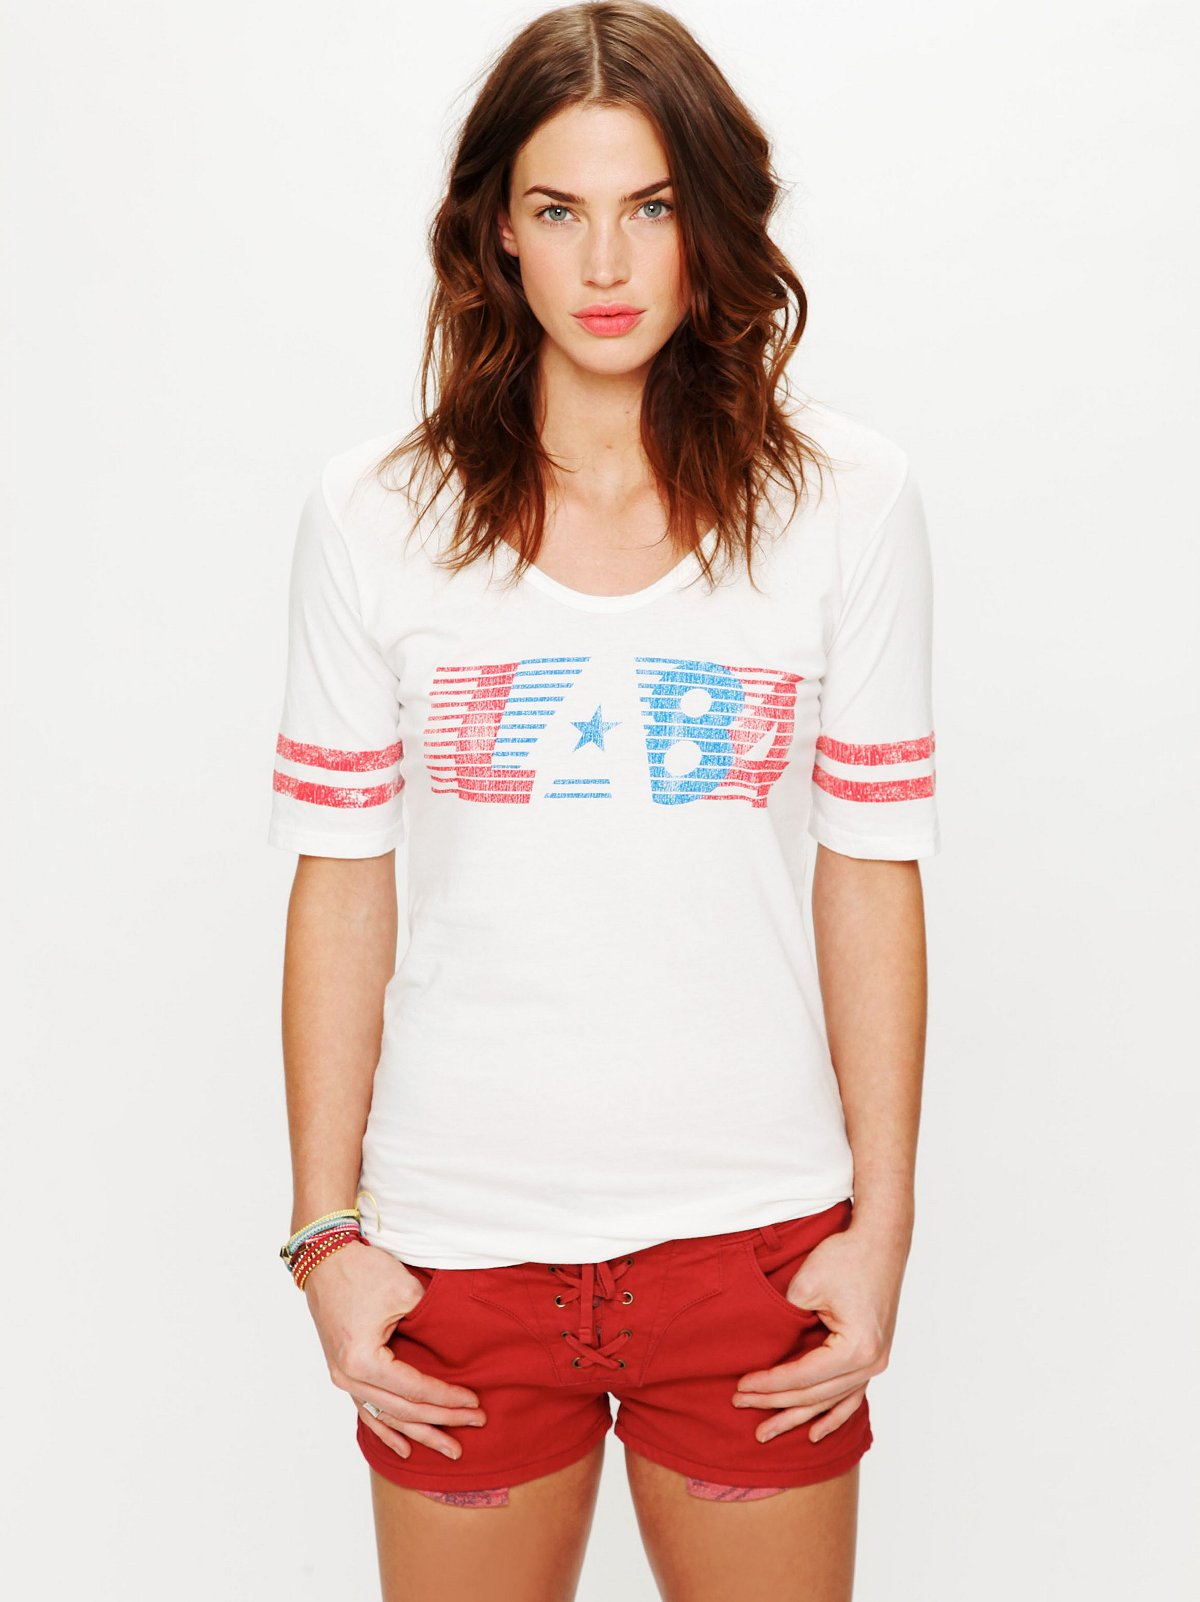 LA 84 Athletic Tee